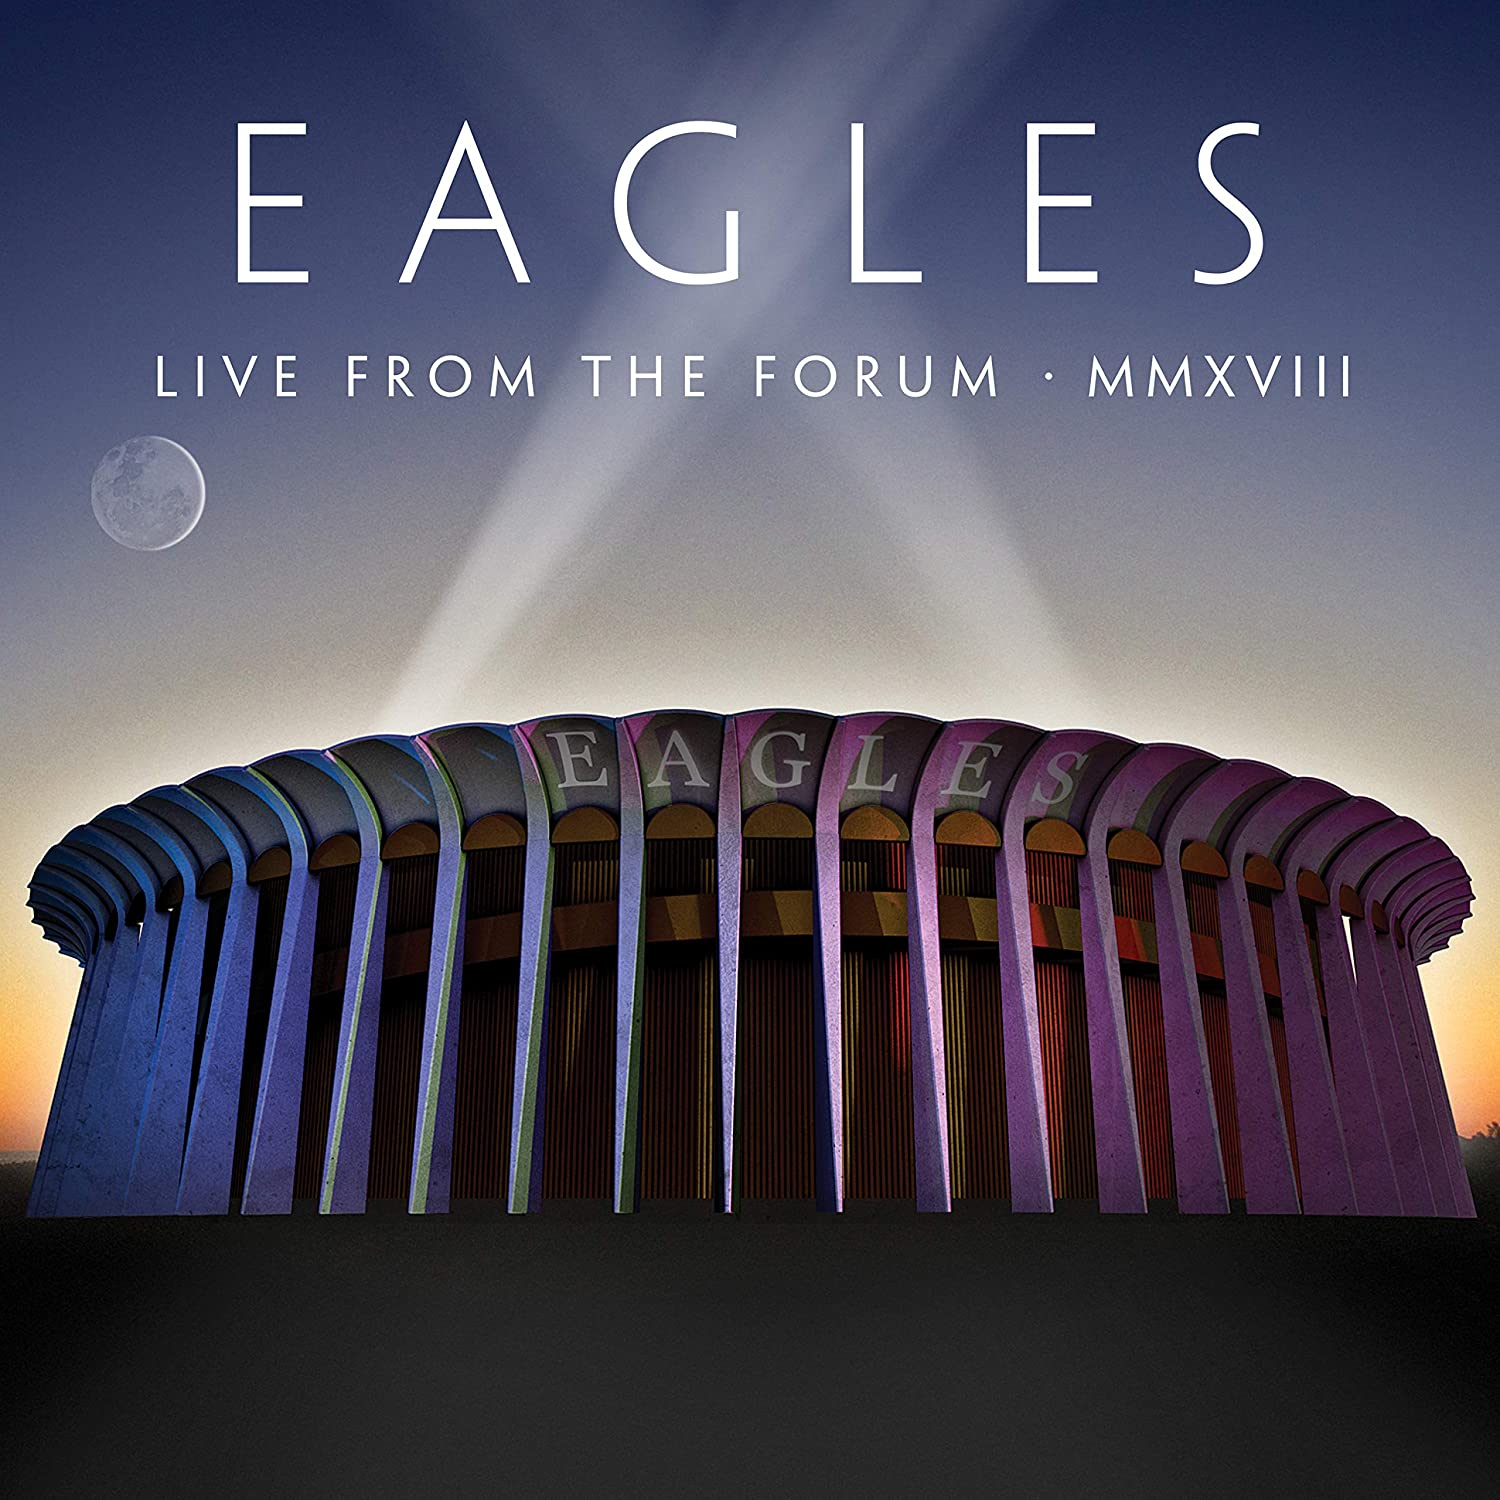 Eagles, The/Live From The Forum MMXVIII (4LP) [LP]